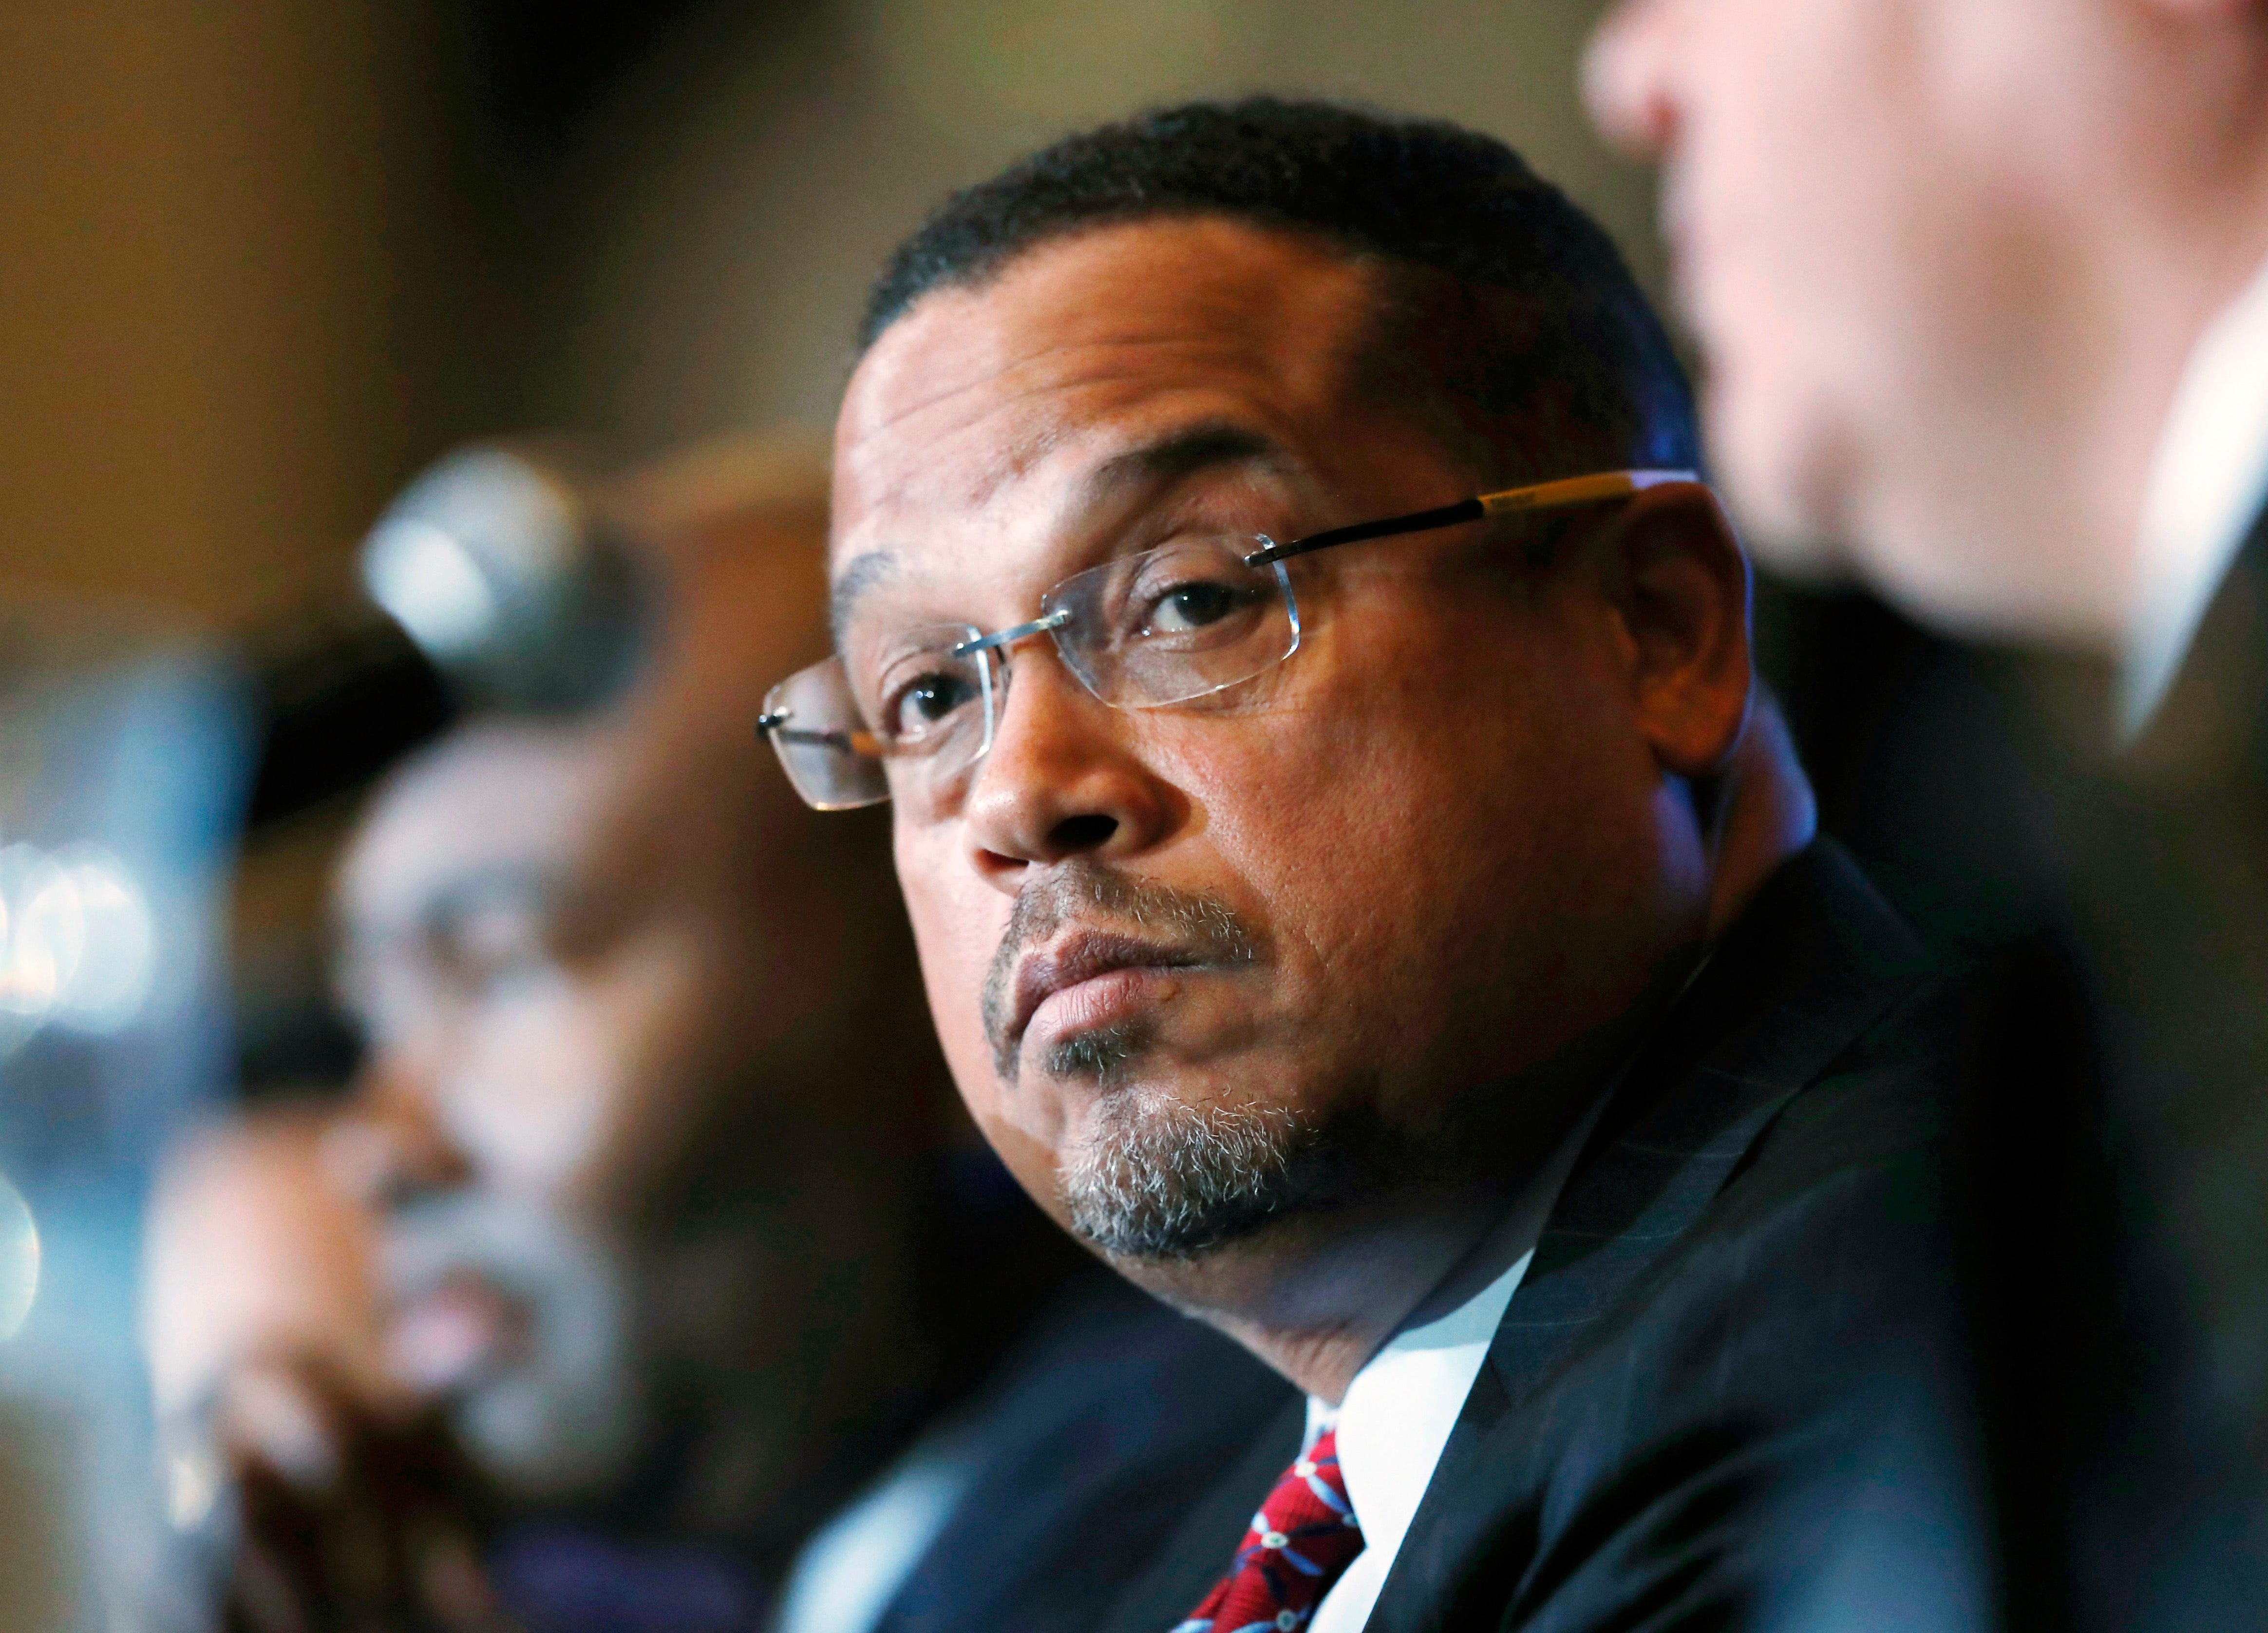 Rep. Keith Ellison denies abuse allegations from ex-girlfriend days before Minnesota primary